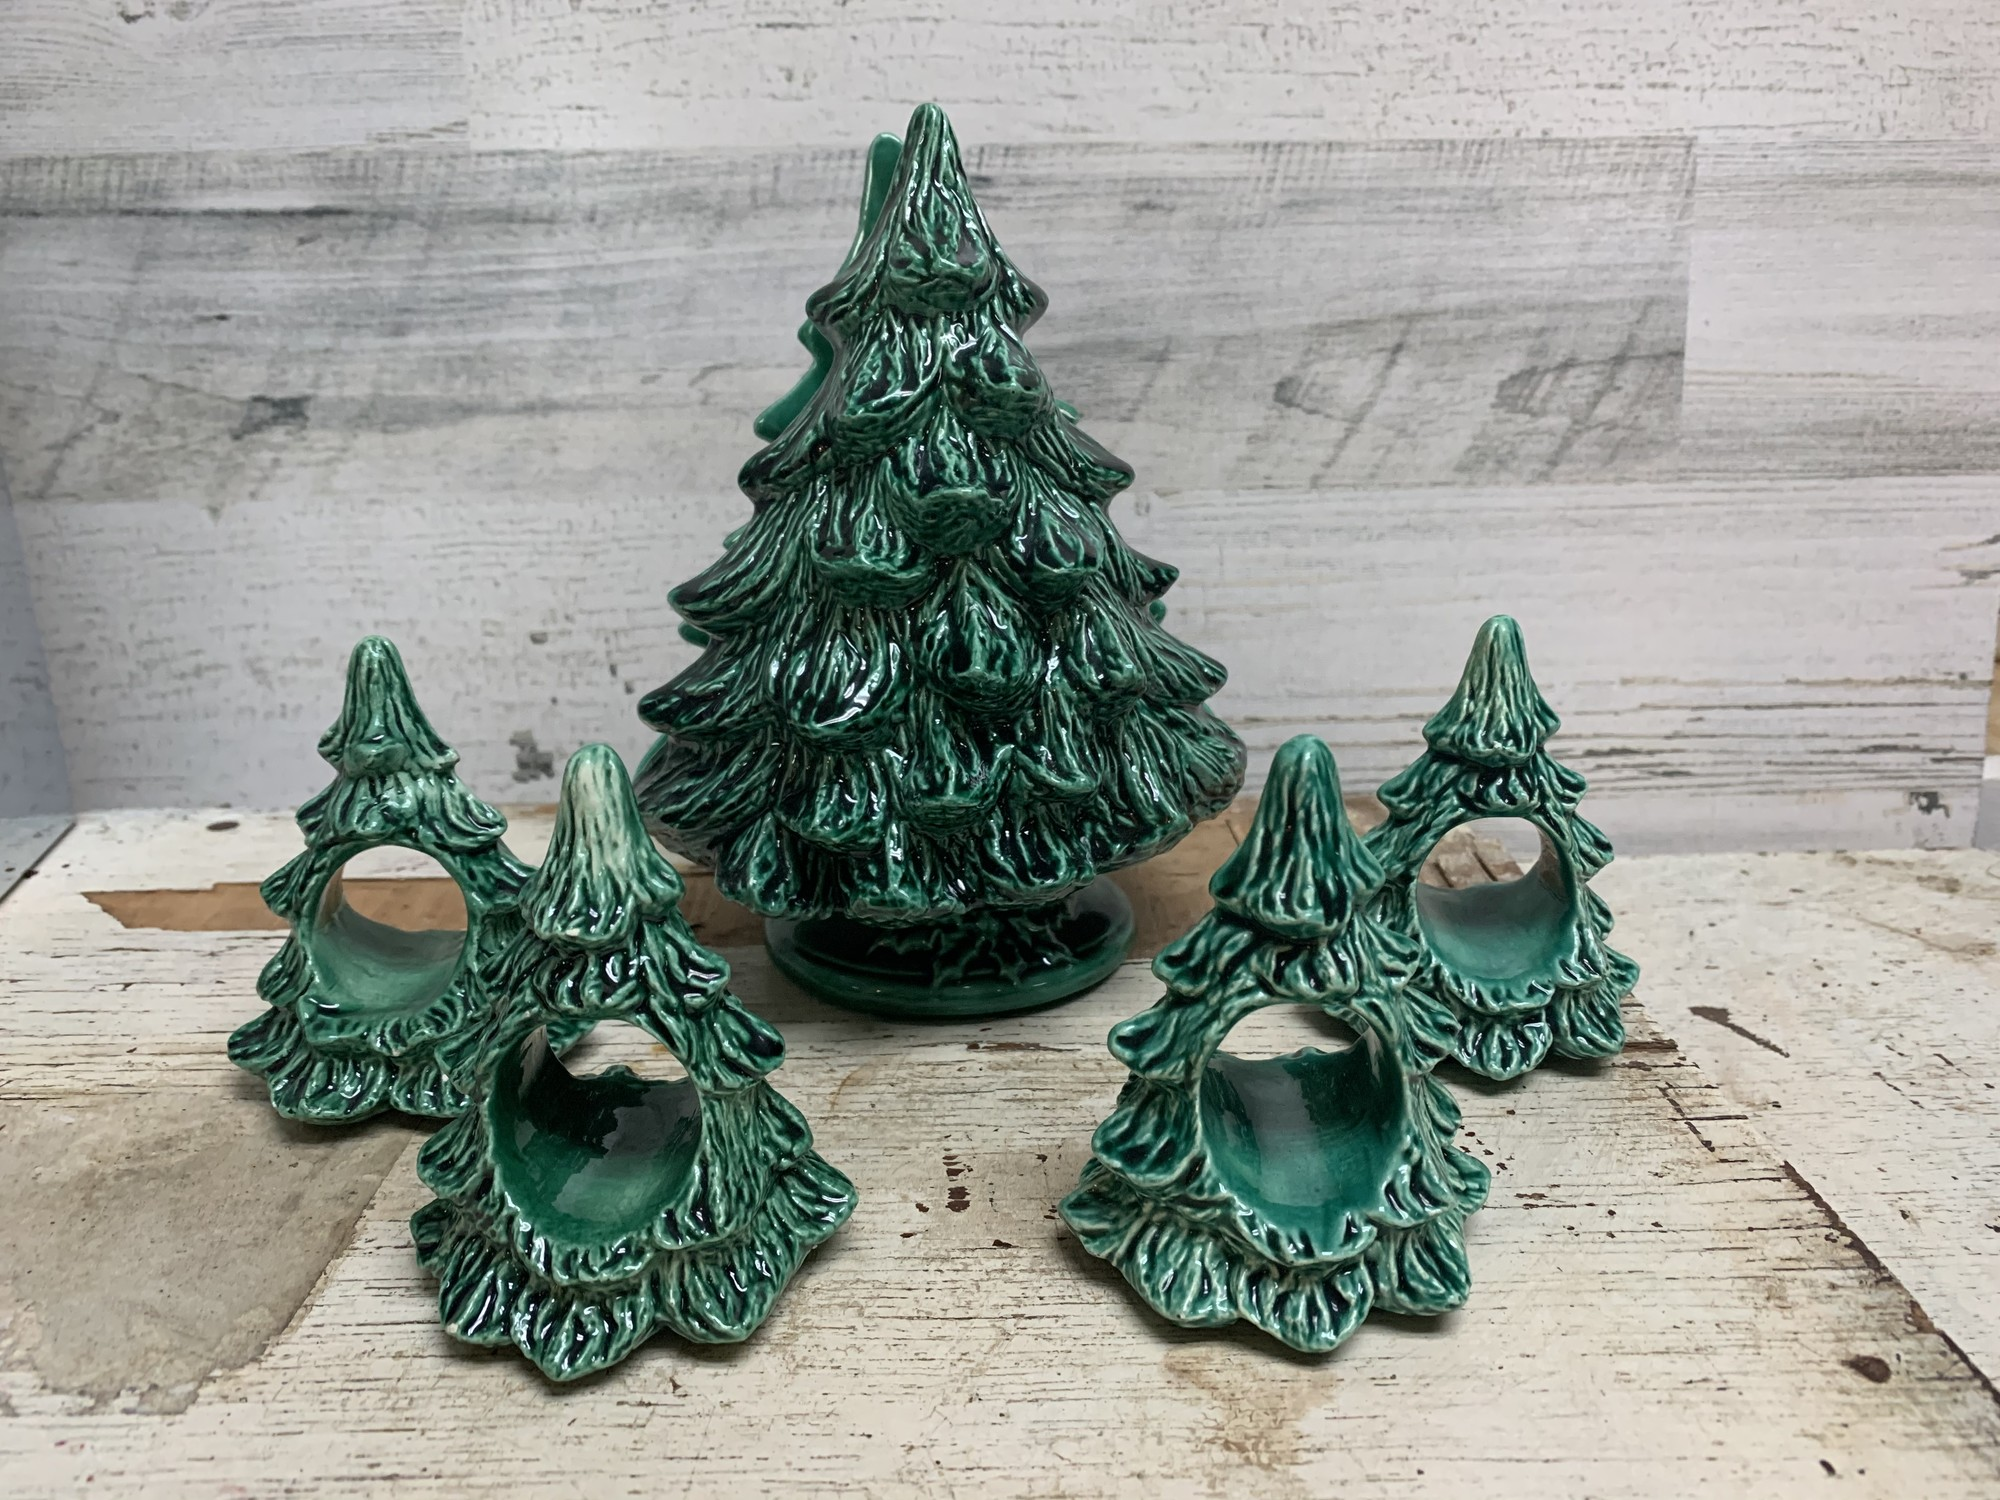 Beautiful vintage ceramic Christmas tree napkin holder, may be used as a card holder, and a set of four (4) napkin rings.<br /> In a good vintage condition, there is a small almost unnoticeable chips on two of the napkin rings. Please make sure to look at all the pictures for a closer visual.<br /> Measures approx. napkin/card holder 7 1/2'' tall, 5 1/4'' wide, 3 1/2 base diameter. Napkin rings 3 1/2'' tall, 2 3/4'' wide, 2 1/2'' base diameter.<br /> Thank you.